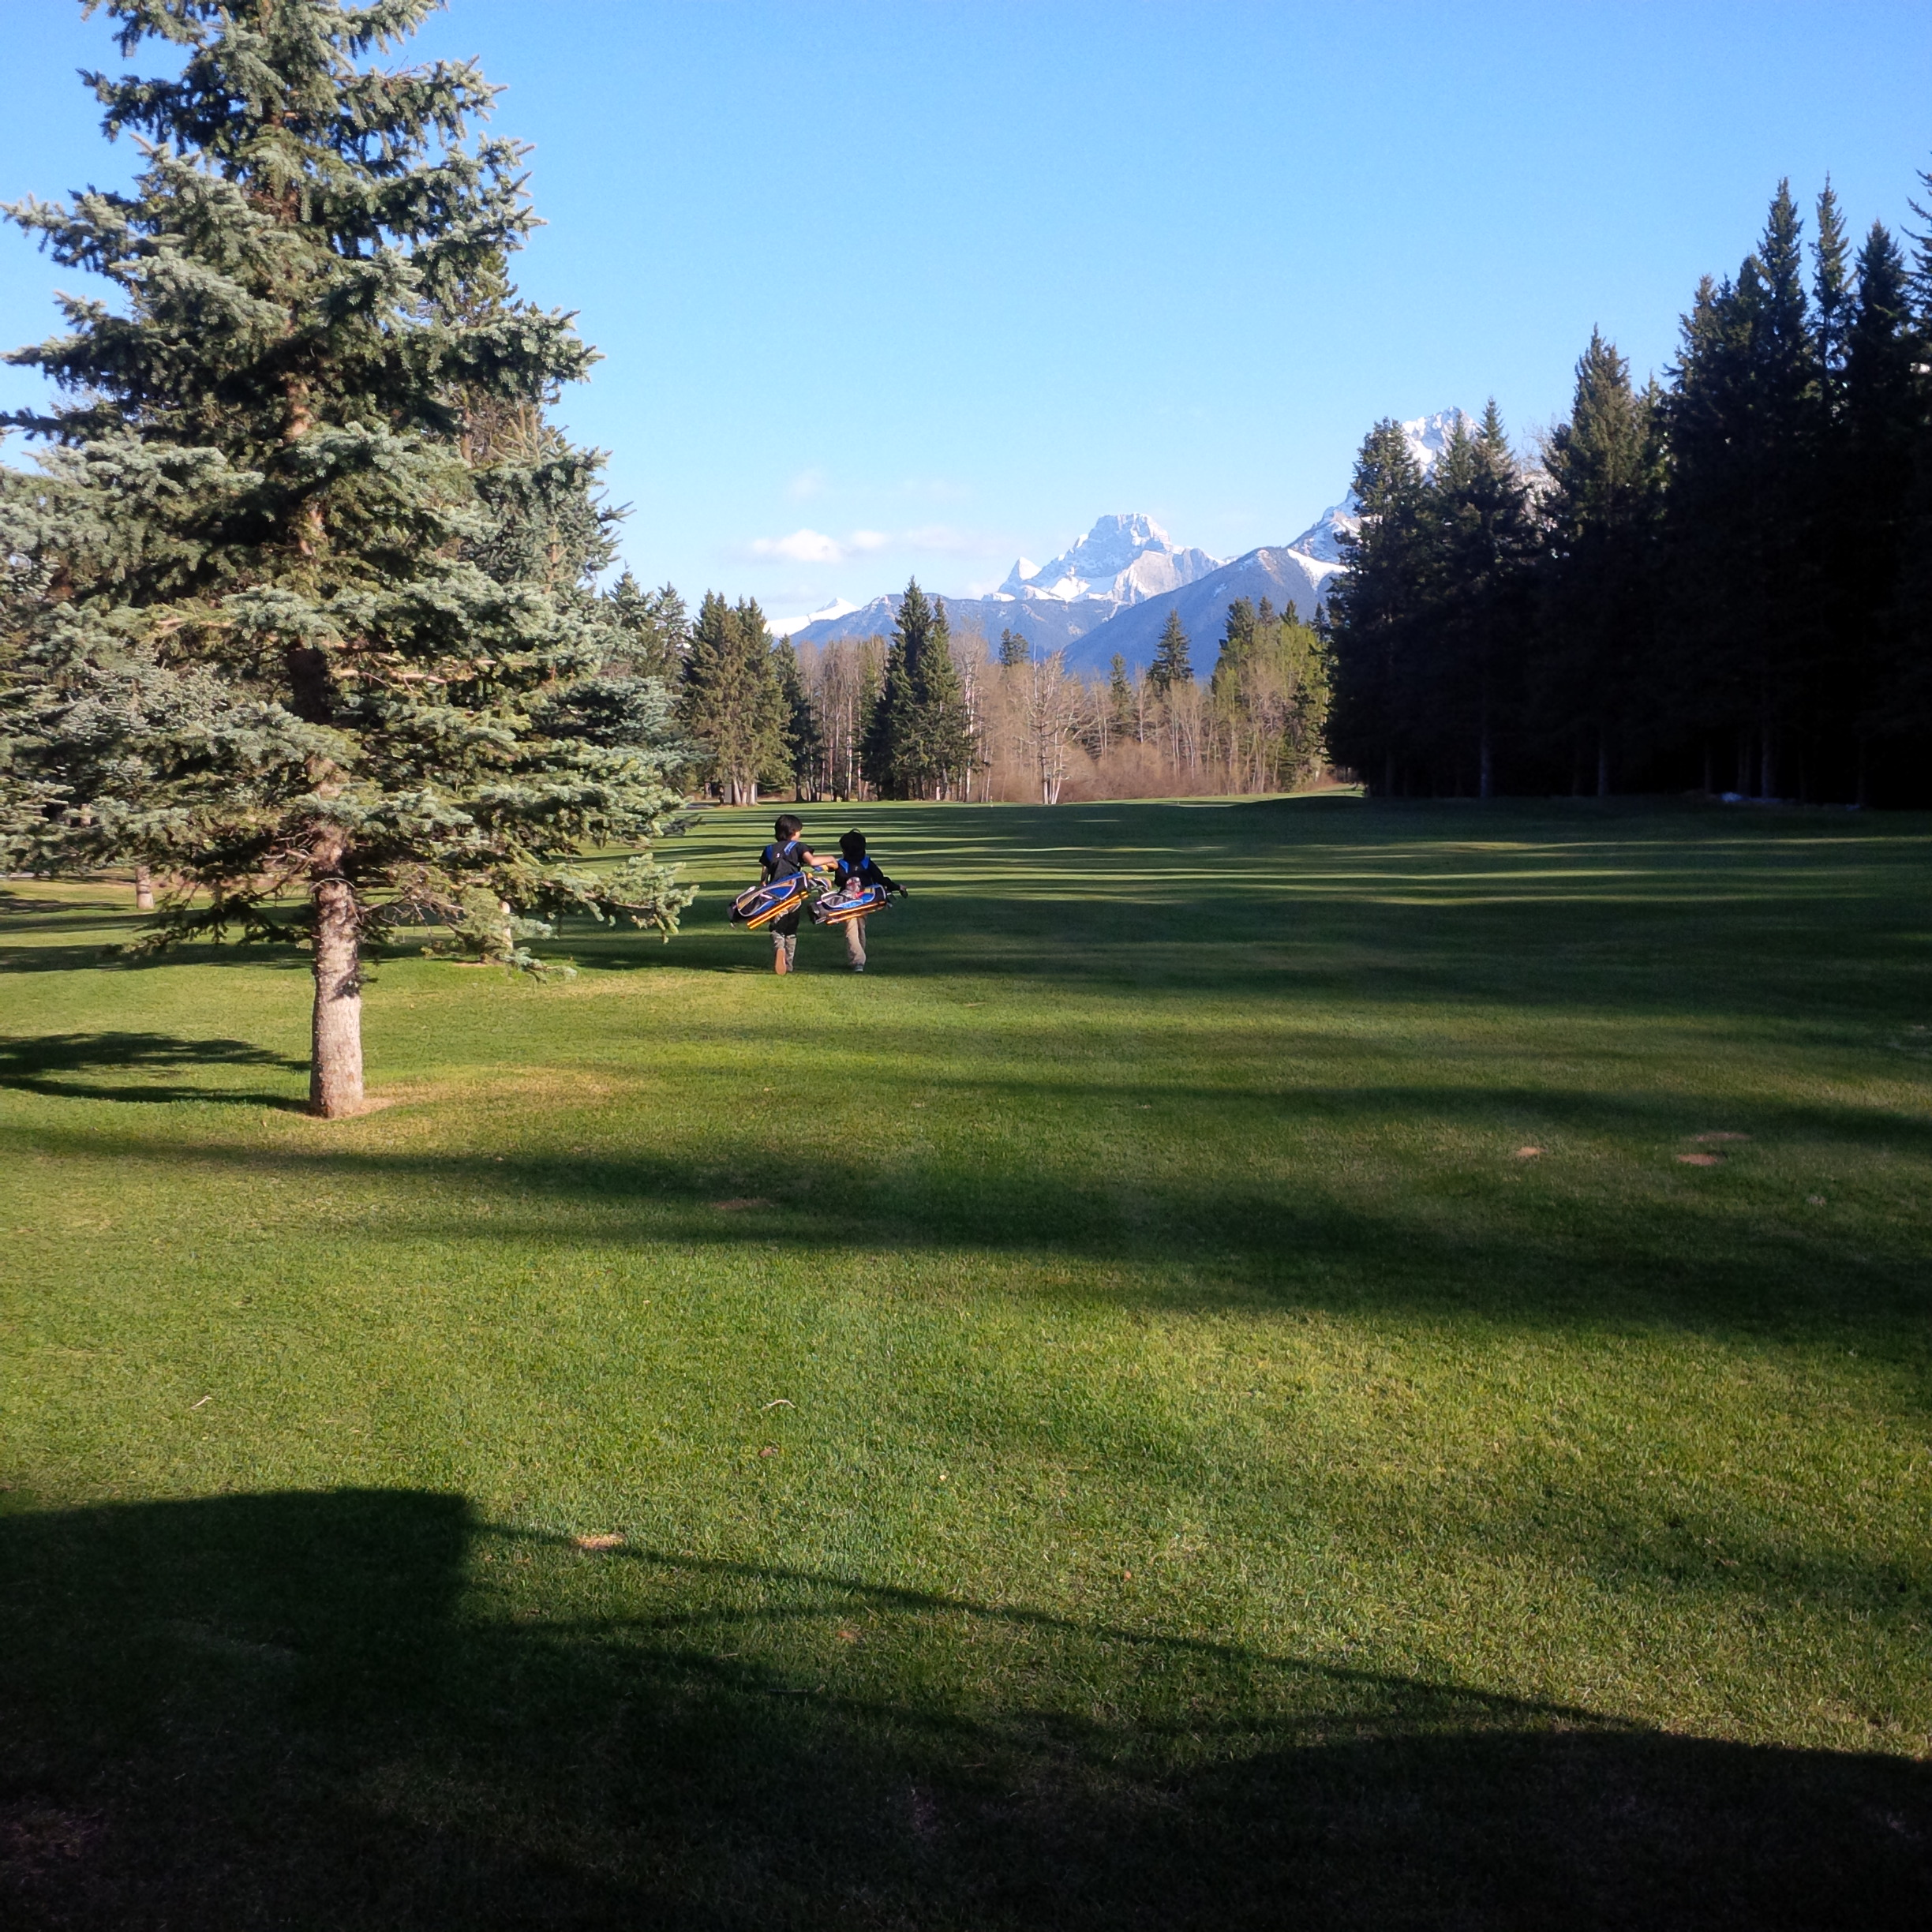 Golf playing lesson at Canmore G&CC